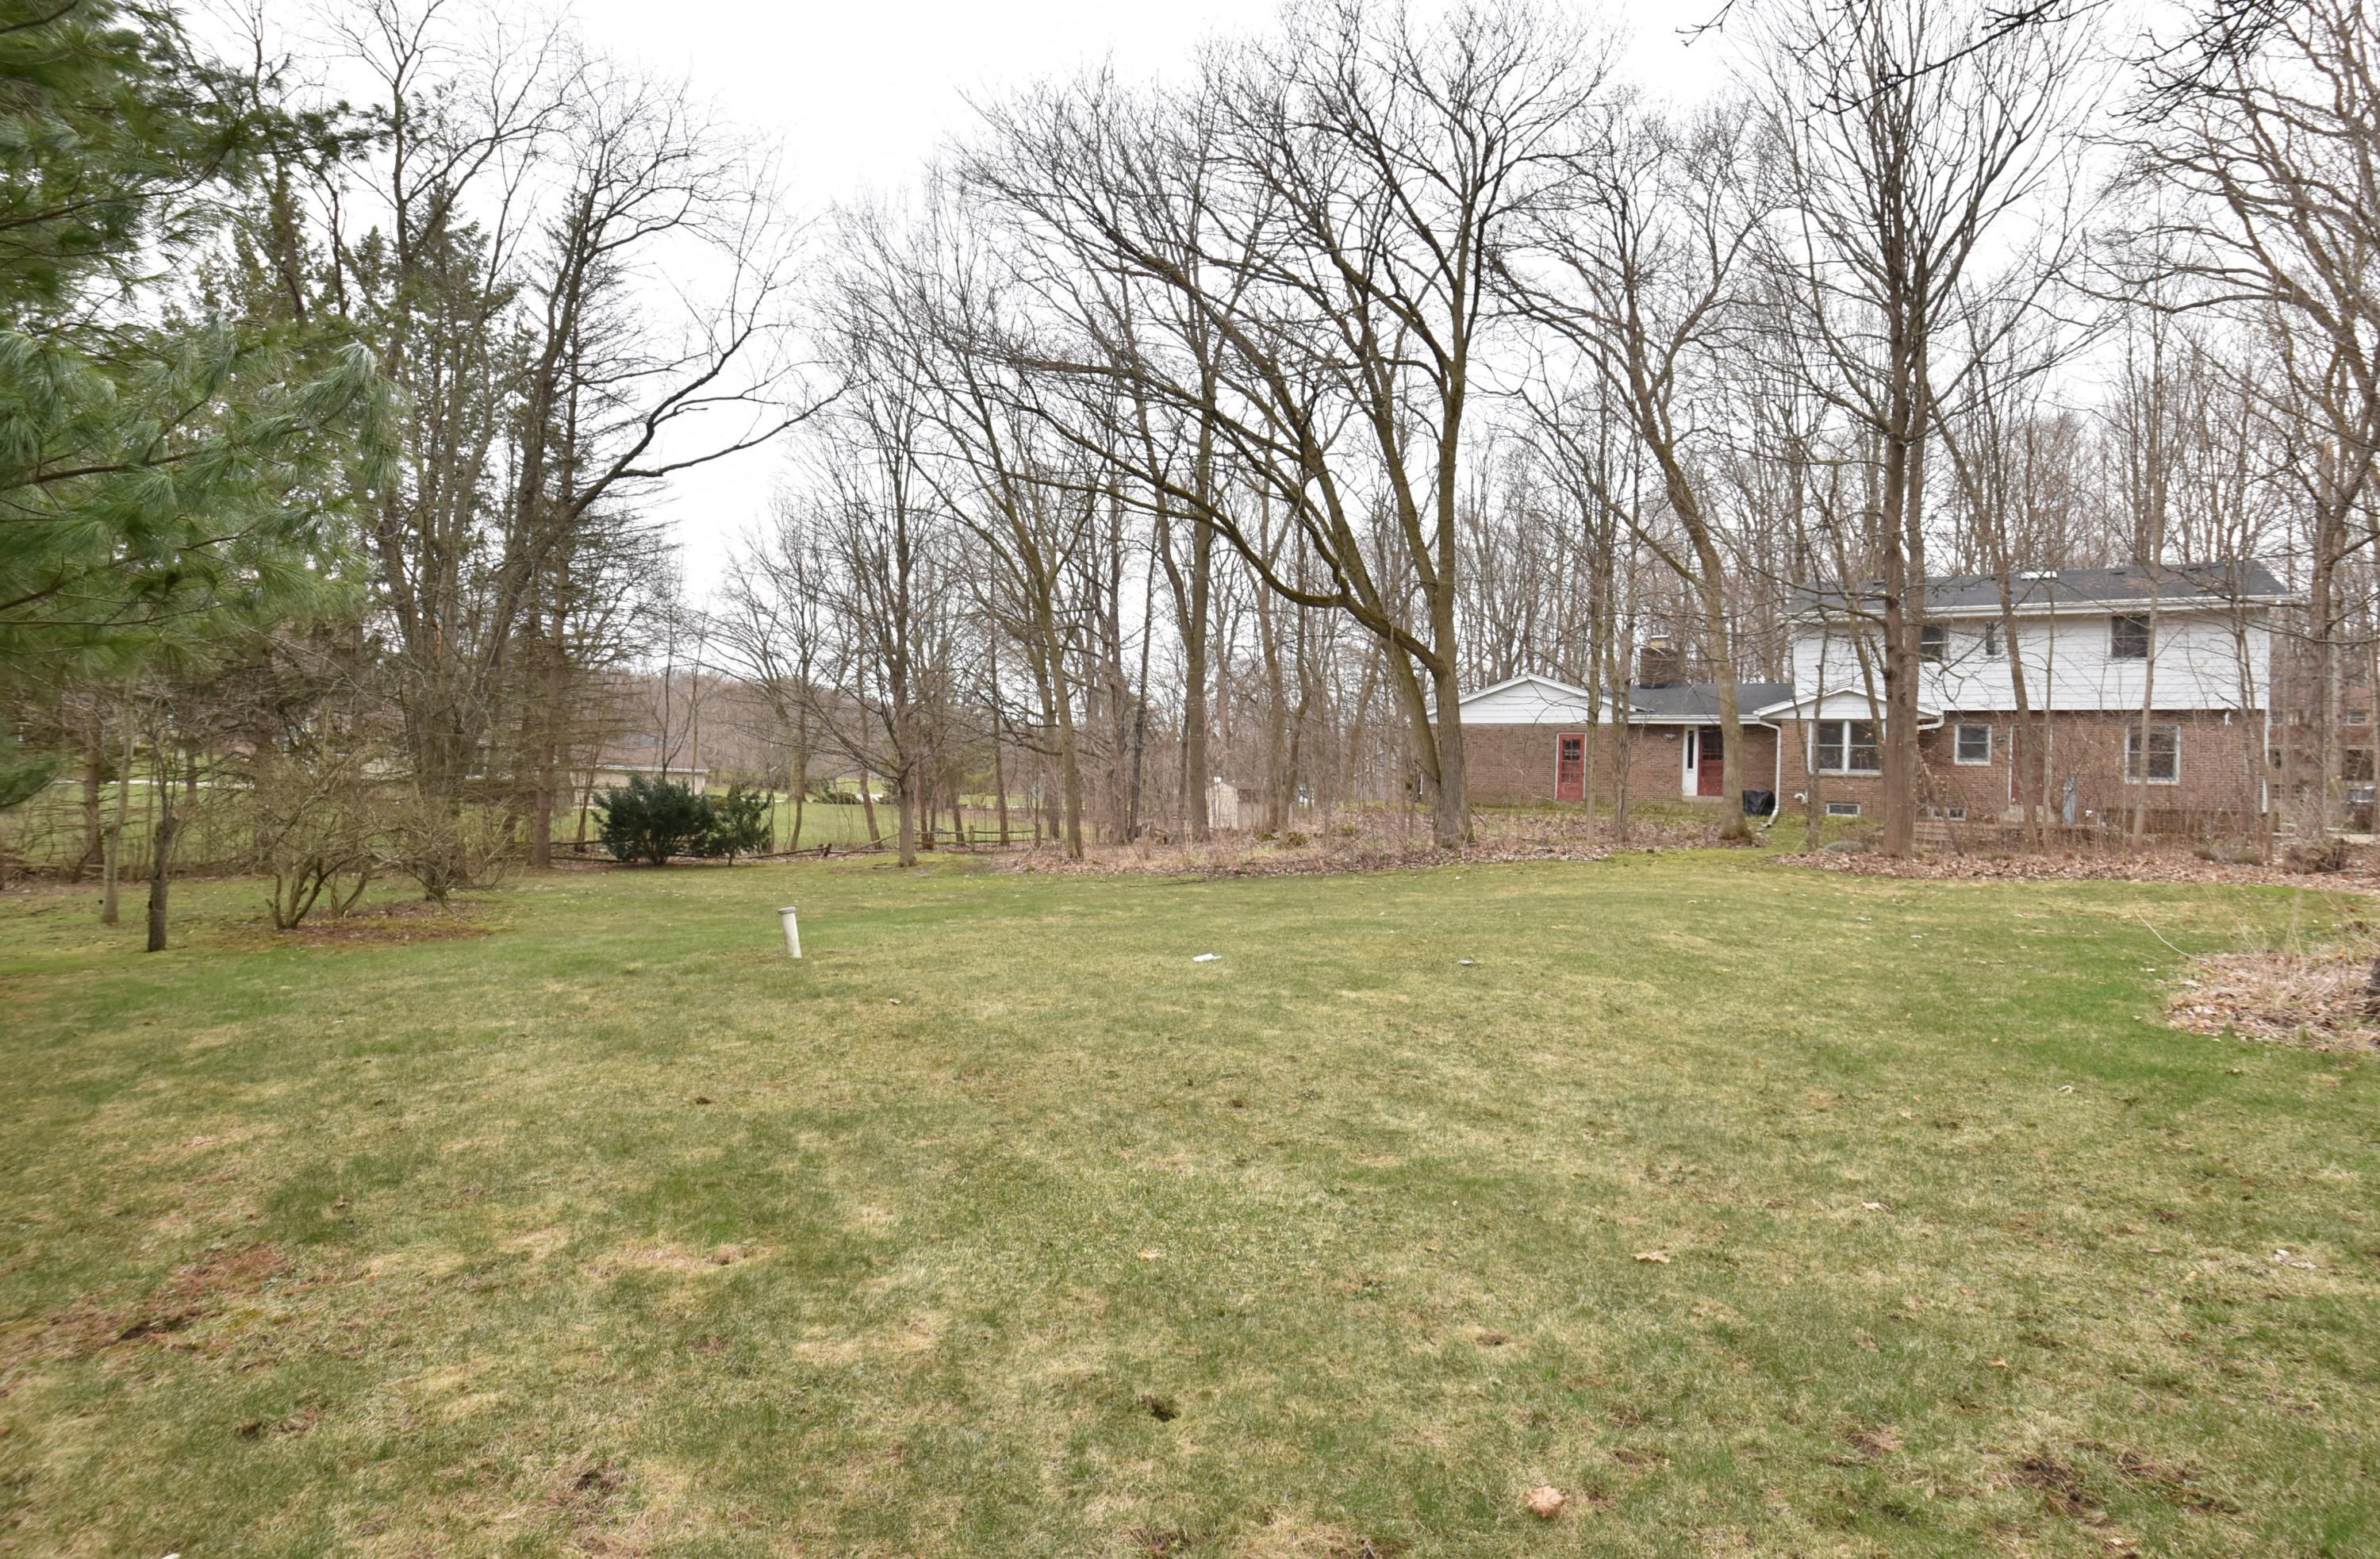 W2365404 Maple Hill Ct, Waukesha, Wisconsin 53189, 4 Bedrooms Bedrooms, 8 Rooms Rooms,1 BathroomBathrooms,Single-Family,For Sale,Maple Hill Ct,1683278